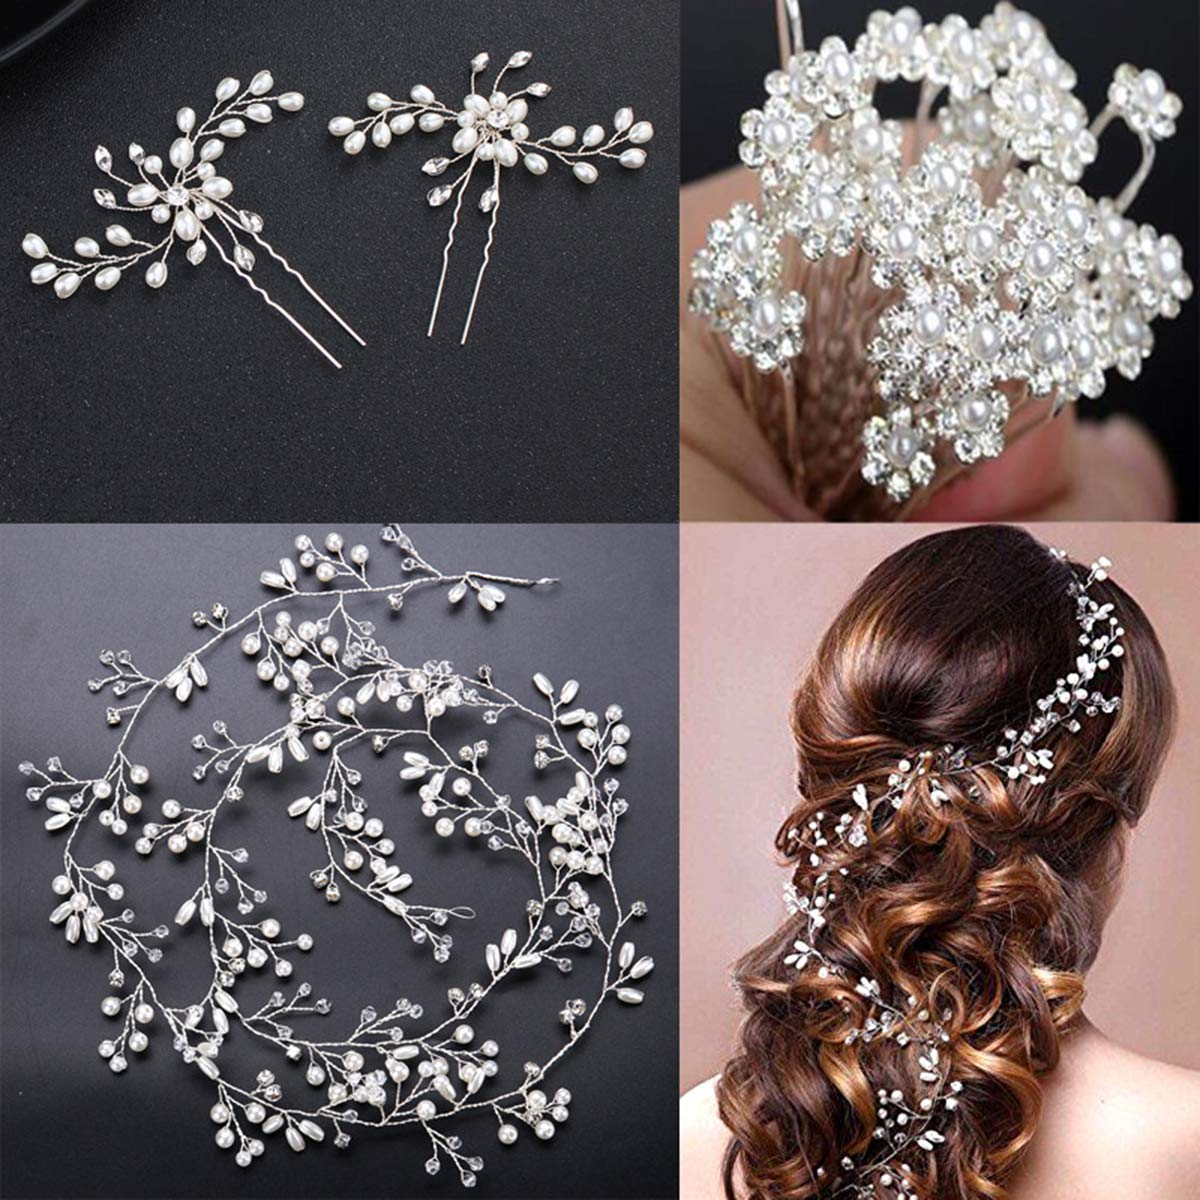 100cm / 39.3in Crystals Bridal Wedding Jewelry Hair Accessories for Women, 1 Pair of Crystal Rhinestone Hair Pins, 20 Pack Pearl Flower Crystal Hair Pins Clips,1 Pack Hair Headpiece Pearl by CHUMIRRYKIDS